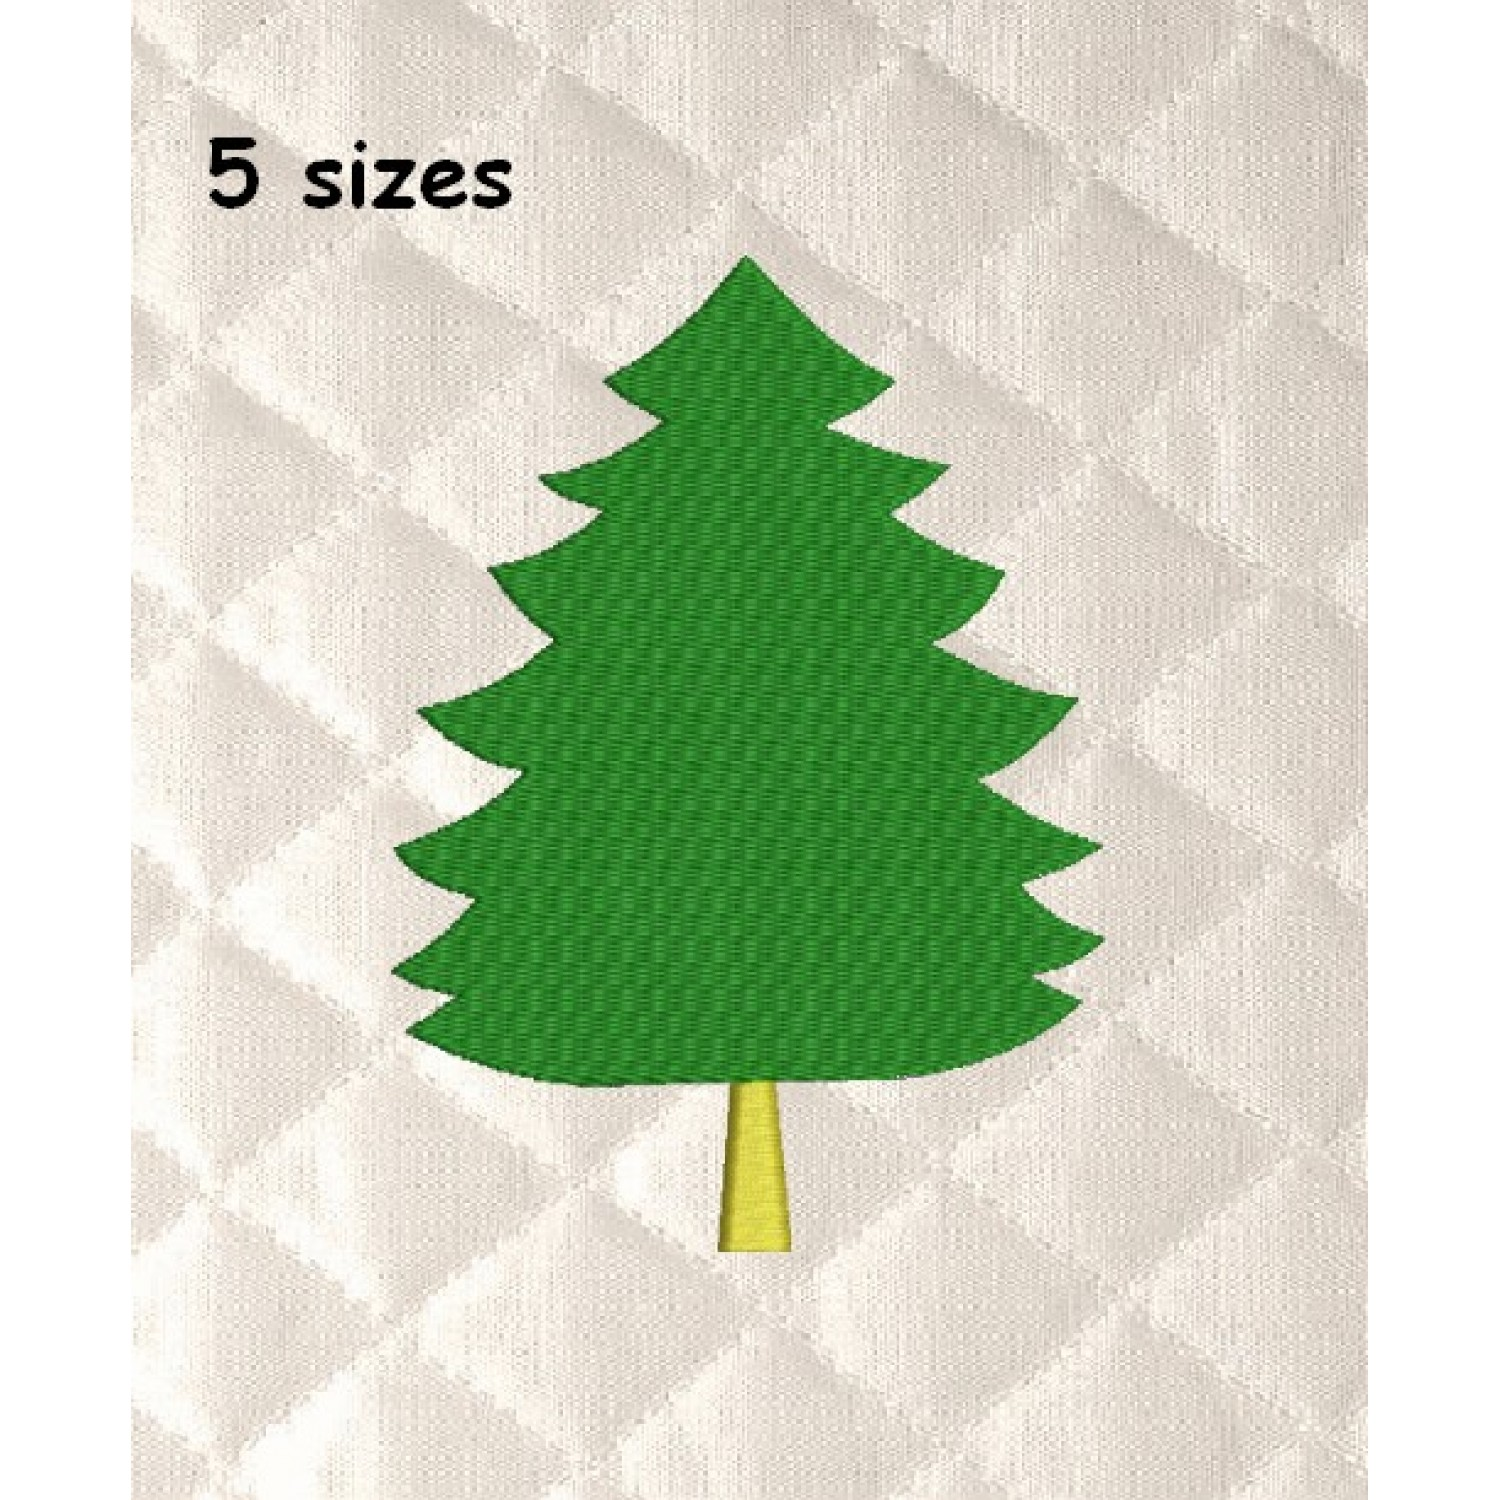 tree christmas embroidery 5 sizes